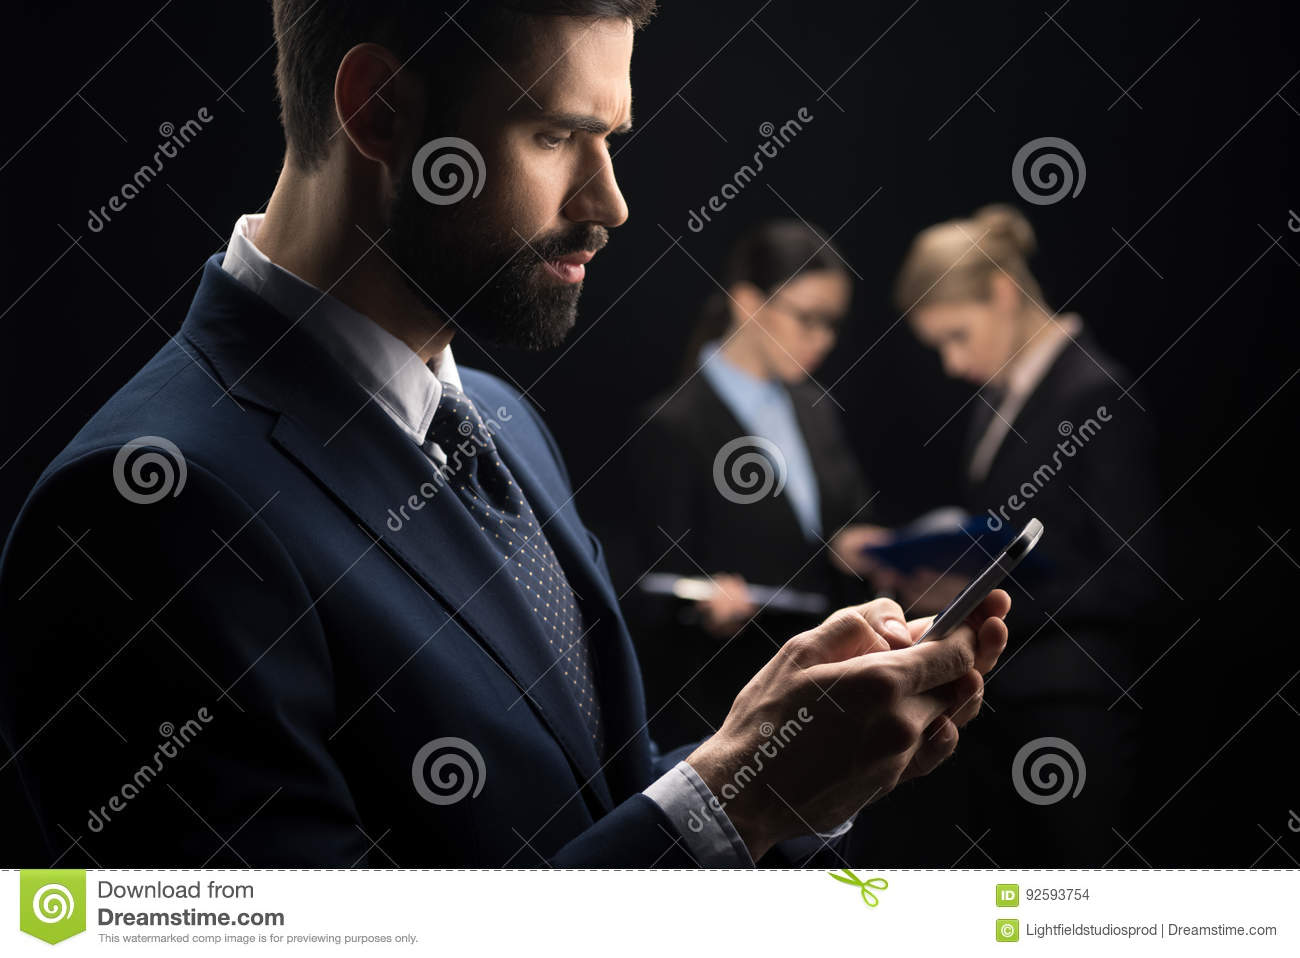 Businessman using smartphone while business people connecting behind